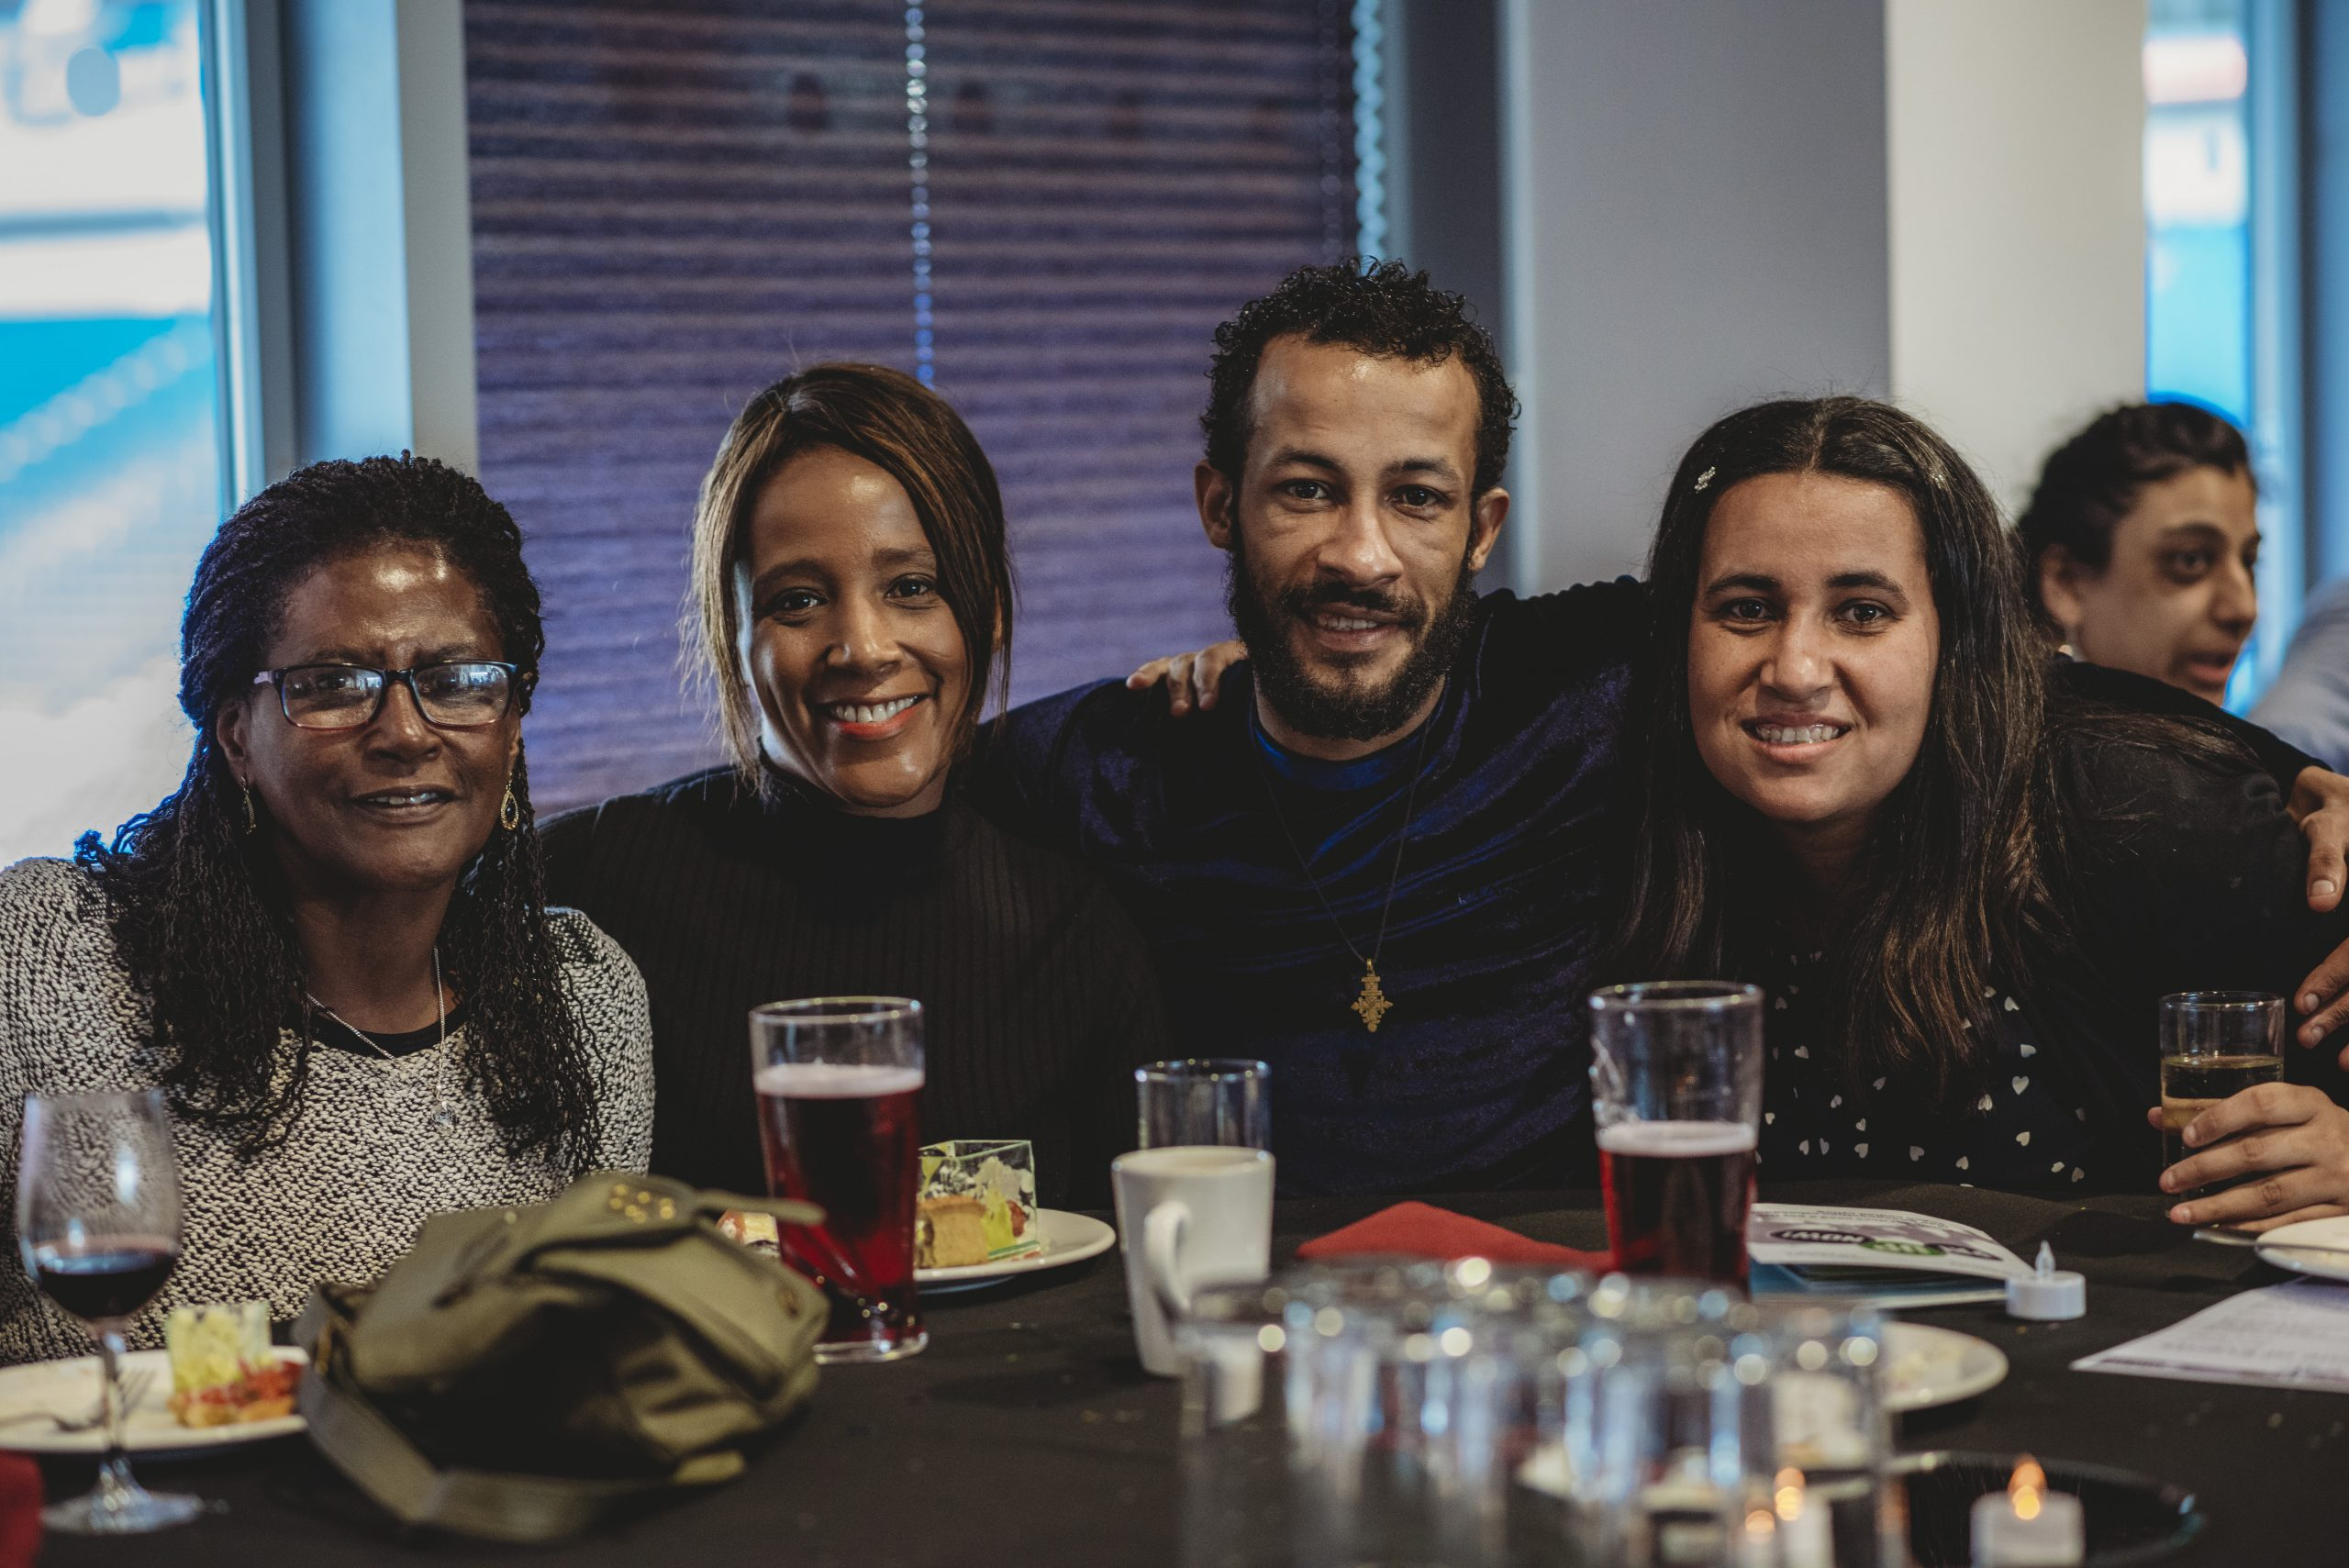 Four people sat at a table smiling at the camera at our mirus stars event